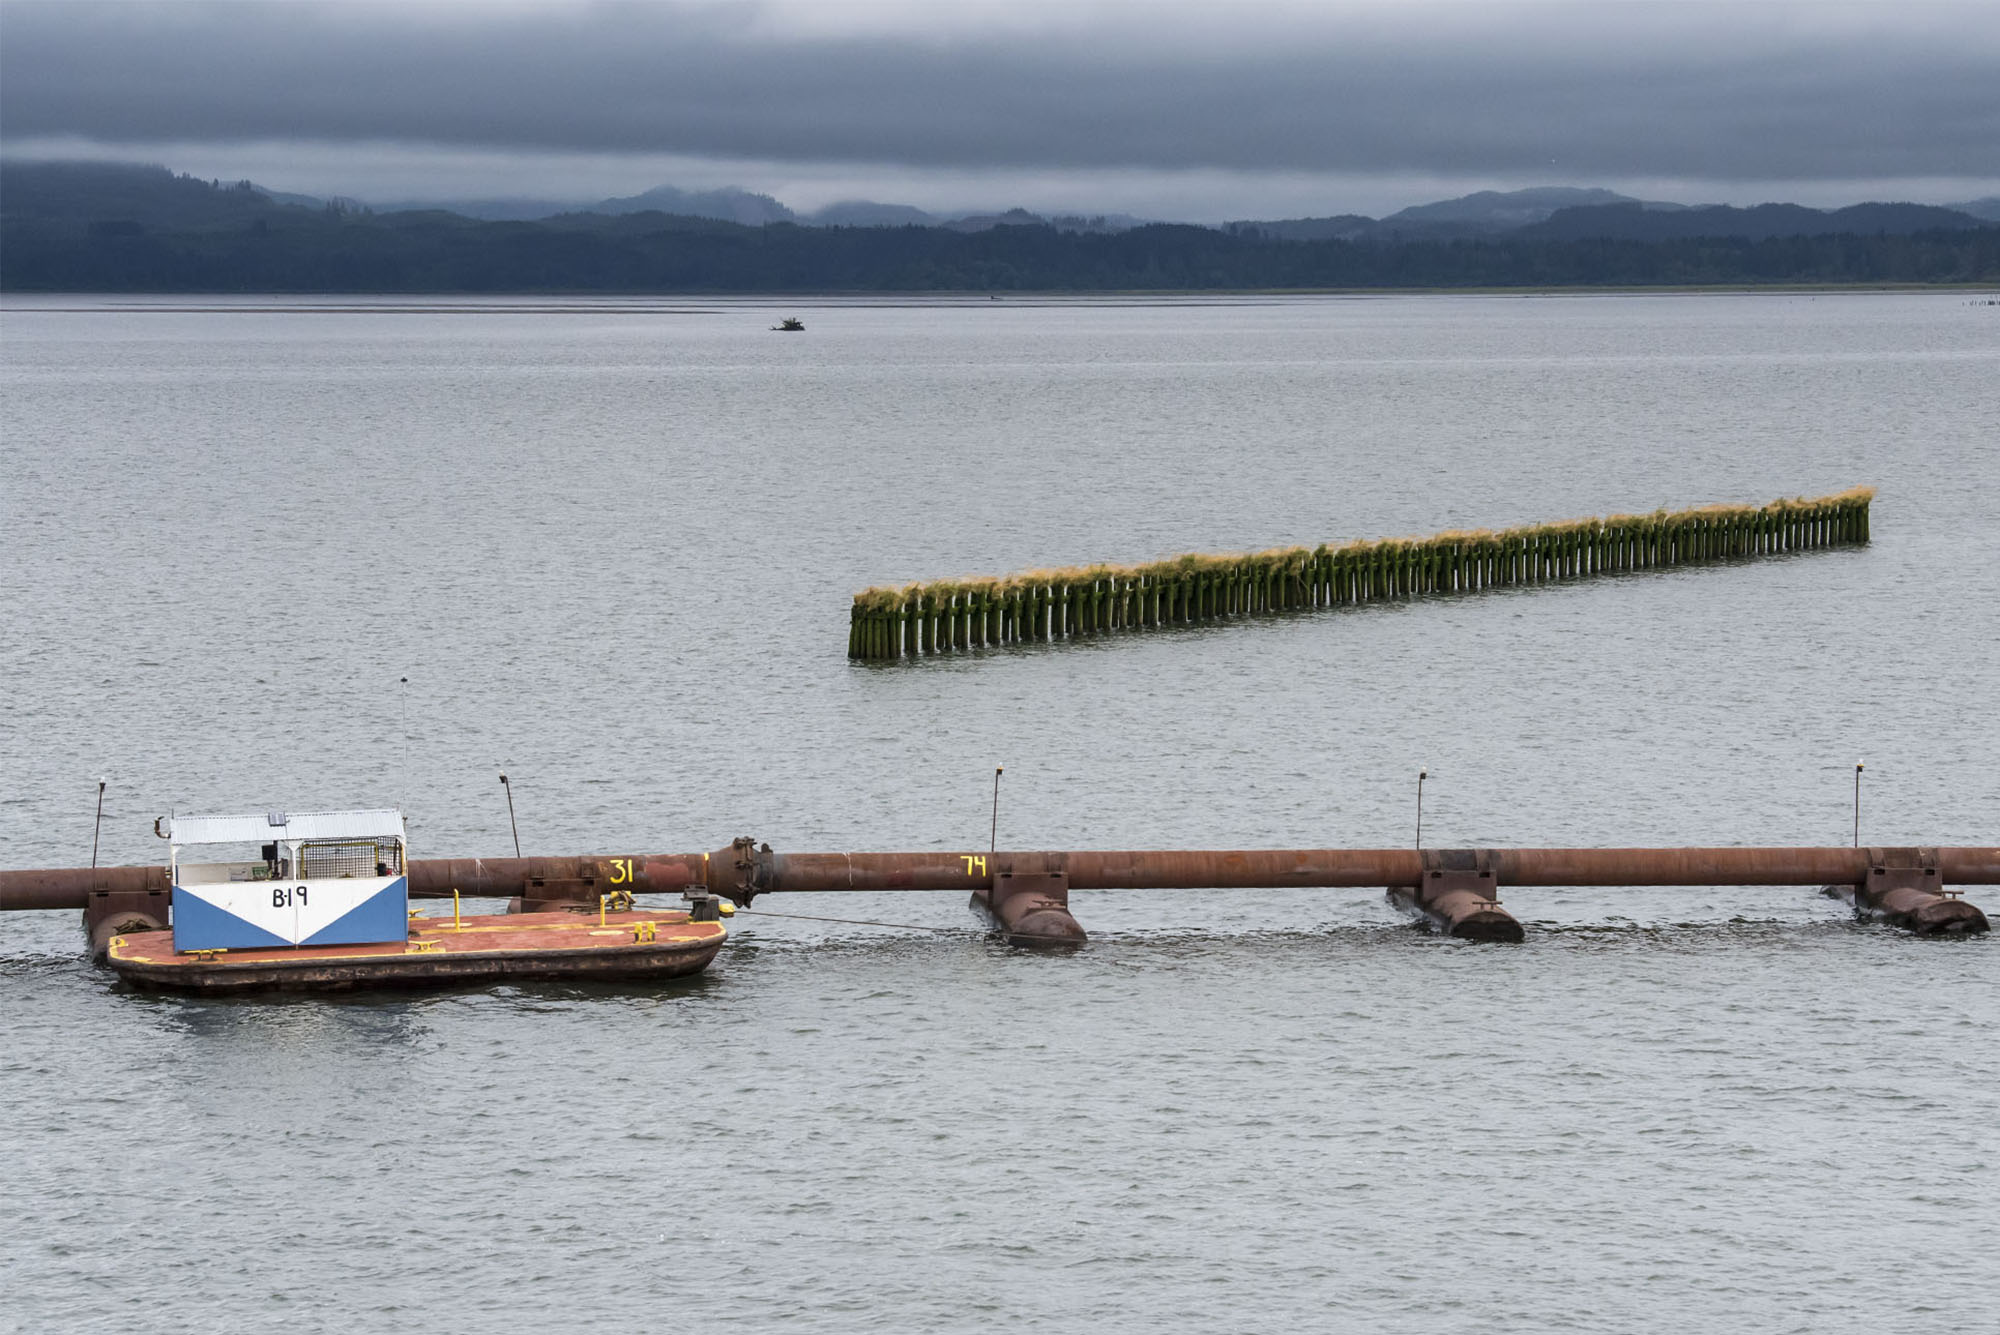 Columbia River Shipping Channel requires a lot of upkeep